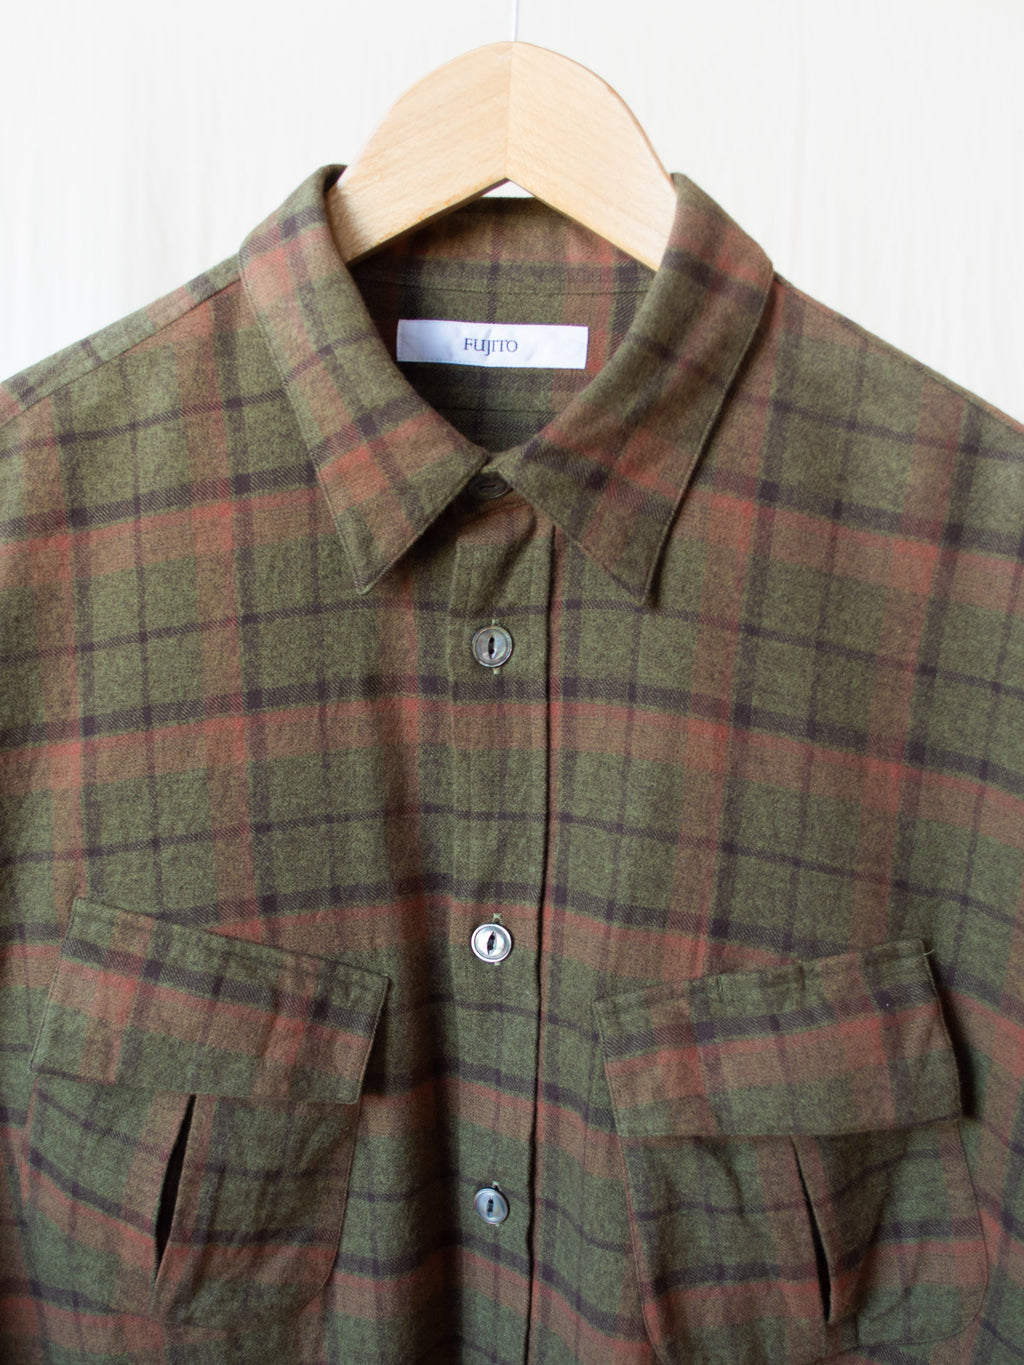 Namu Shop - Fujito Fatigue Shirt - Olive Check